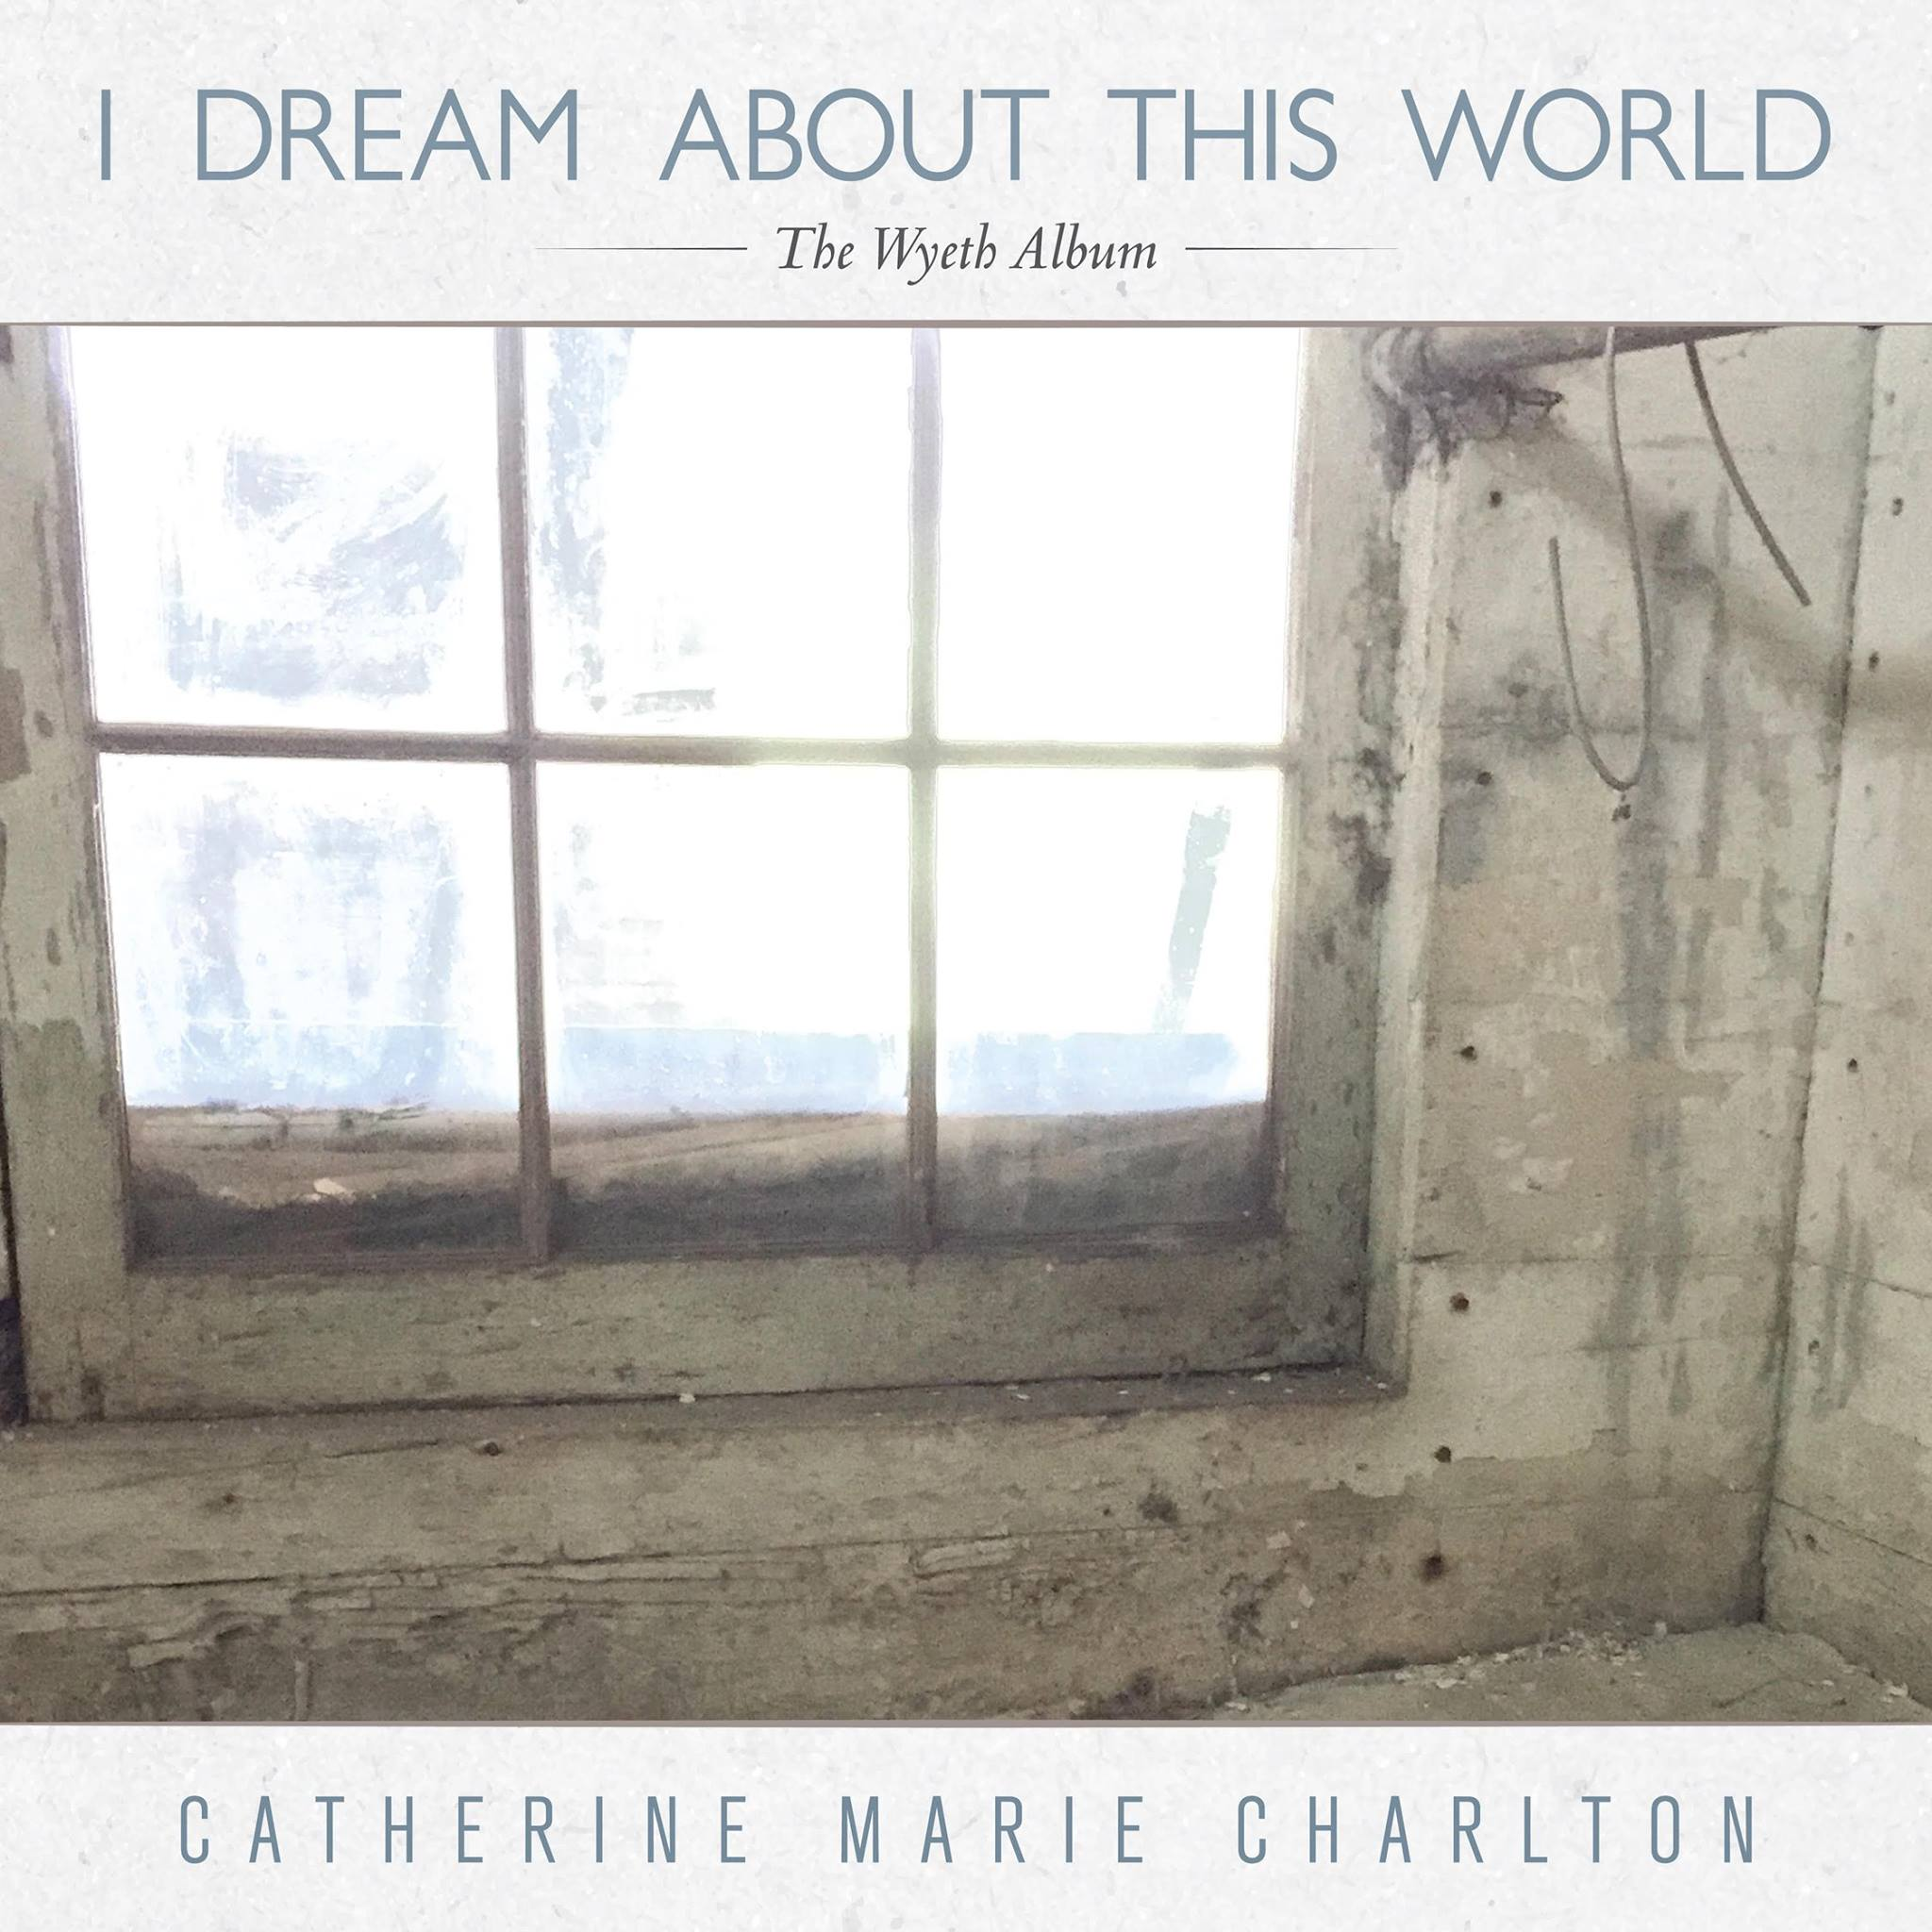 Charlton - I Dream About This World